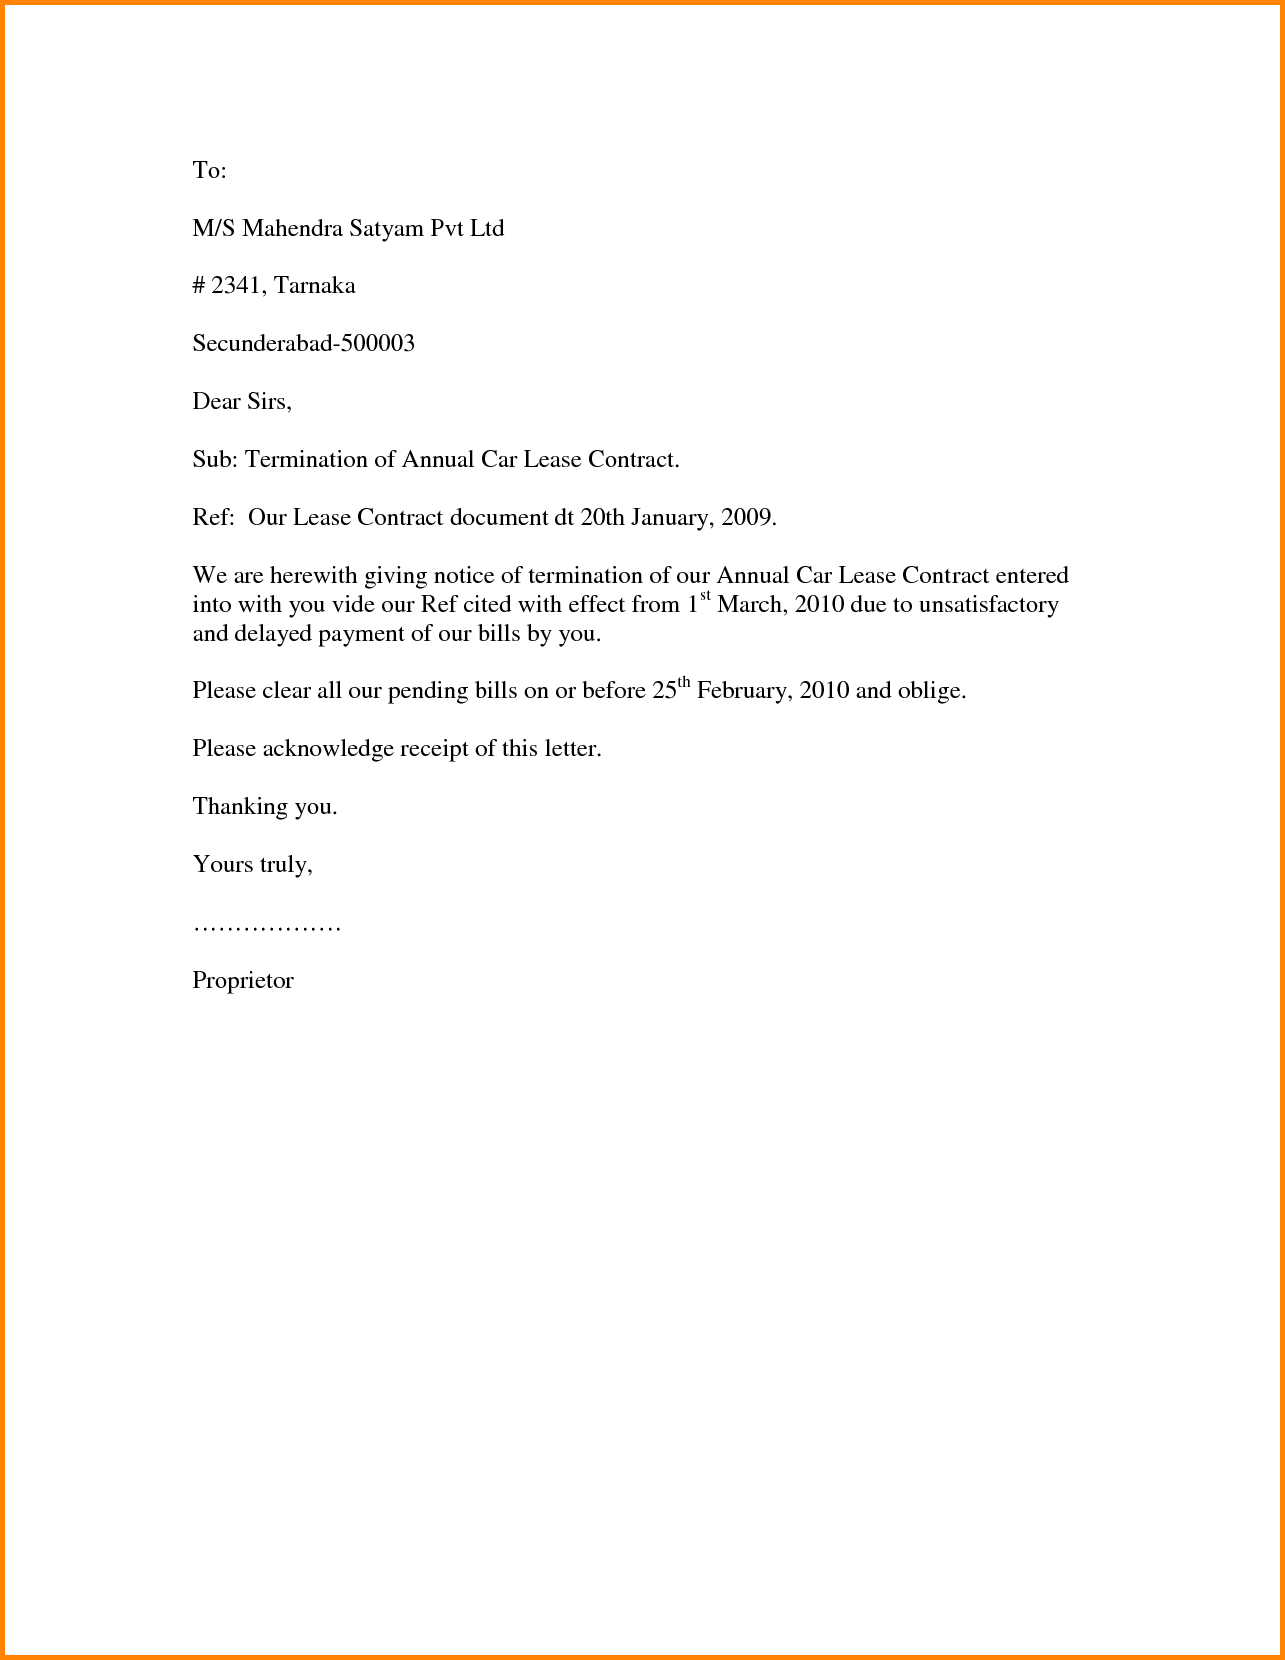 contract cancellation letter template free example-Letter Template To End A Contract Copy Contract Letter Work Sample 17-a